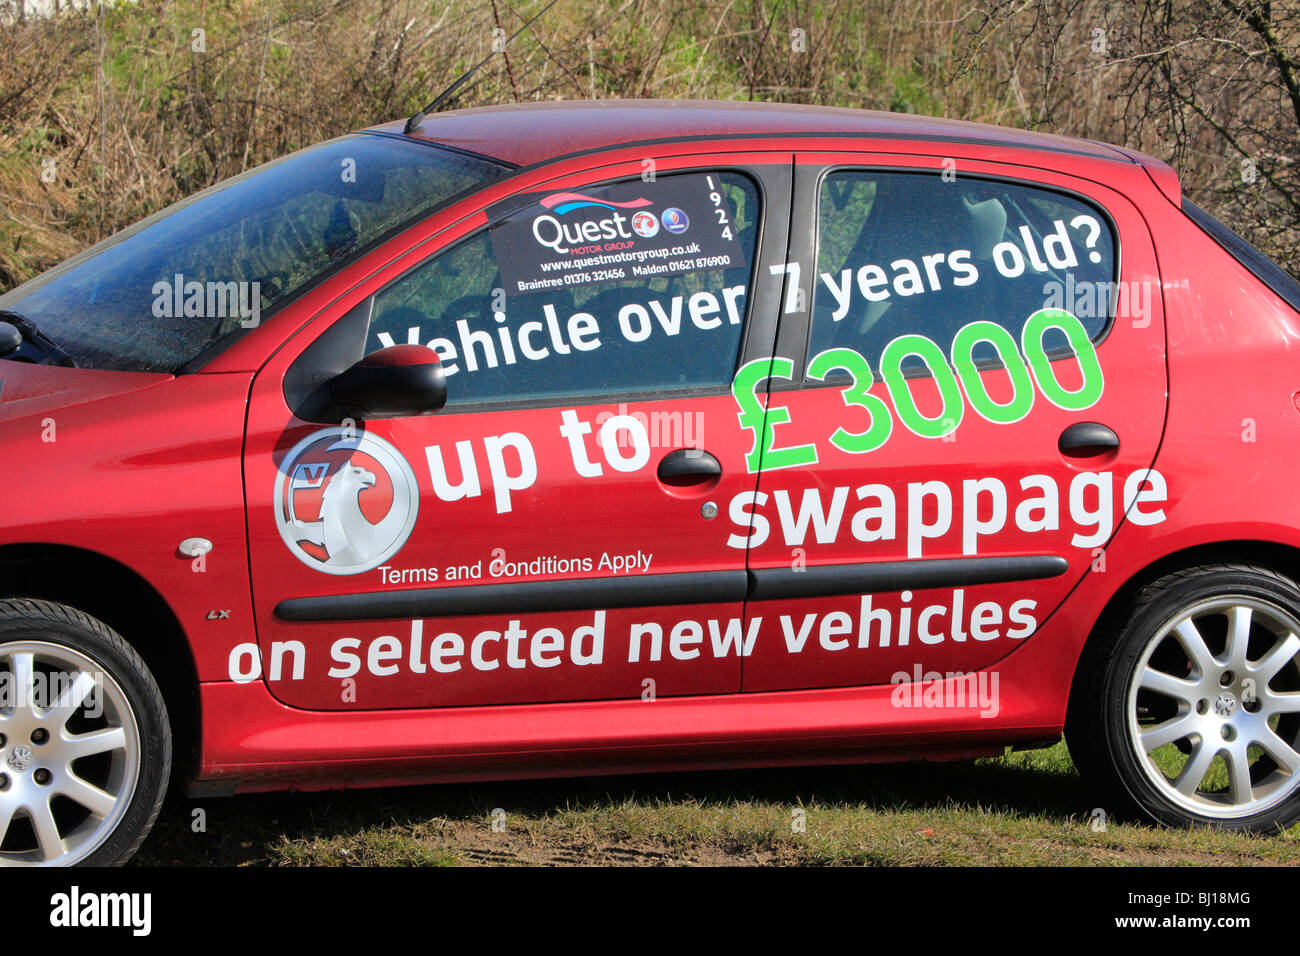 Uk Car Scrappage Scheme Stock Photos Amp Uk Car Scrappage Scheme Stock Images Alamy